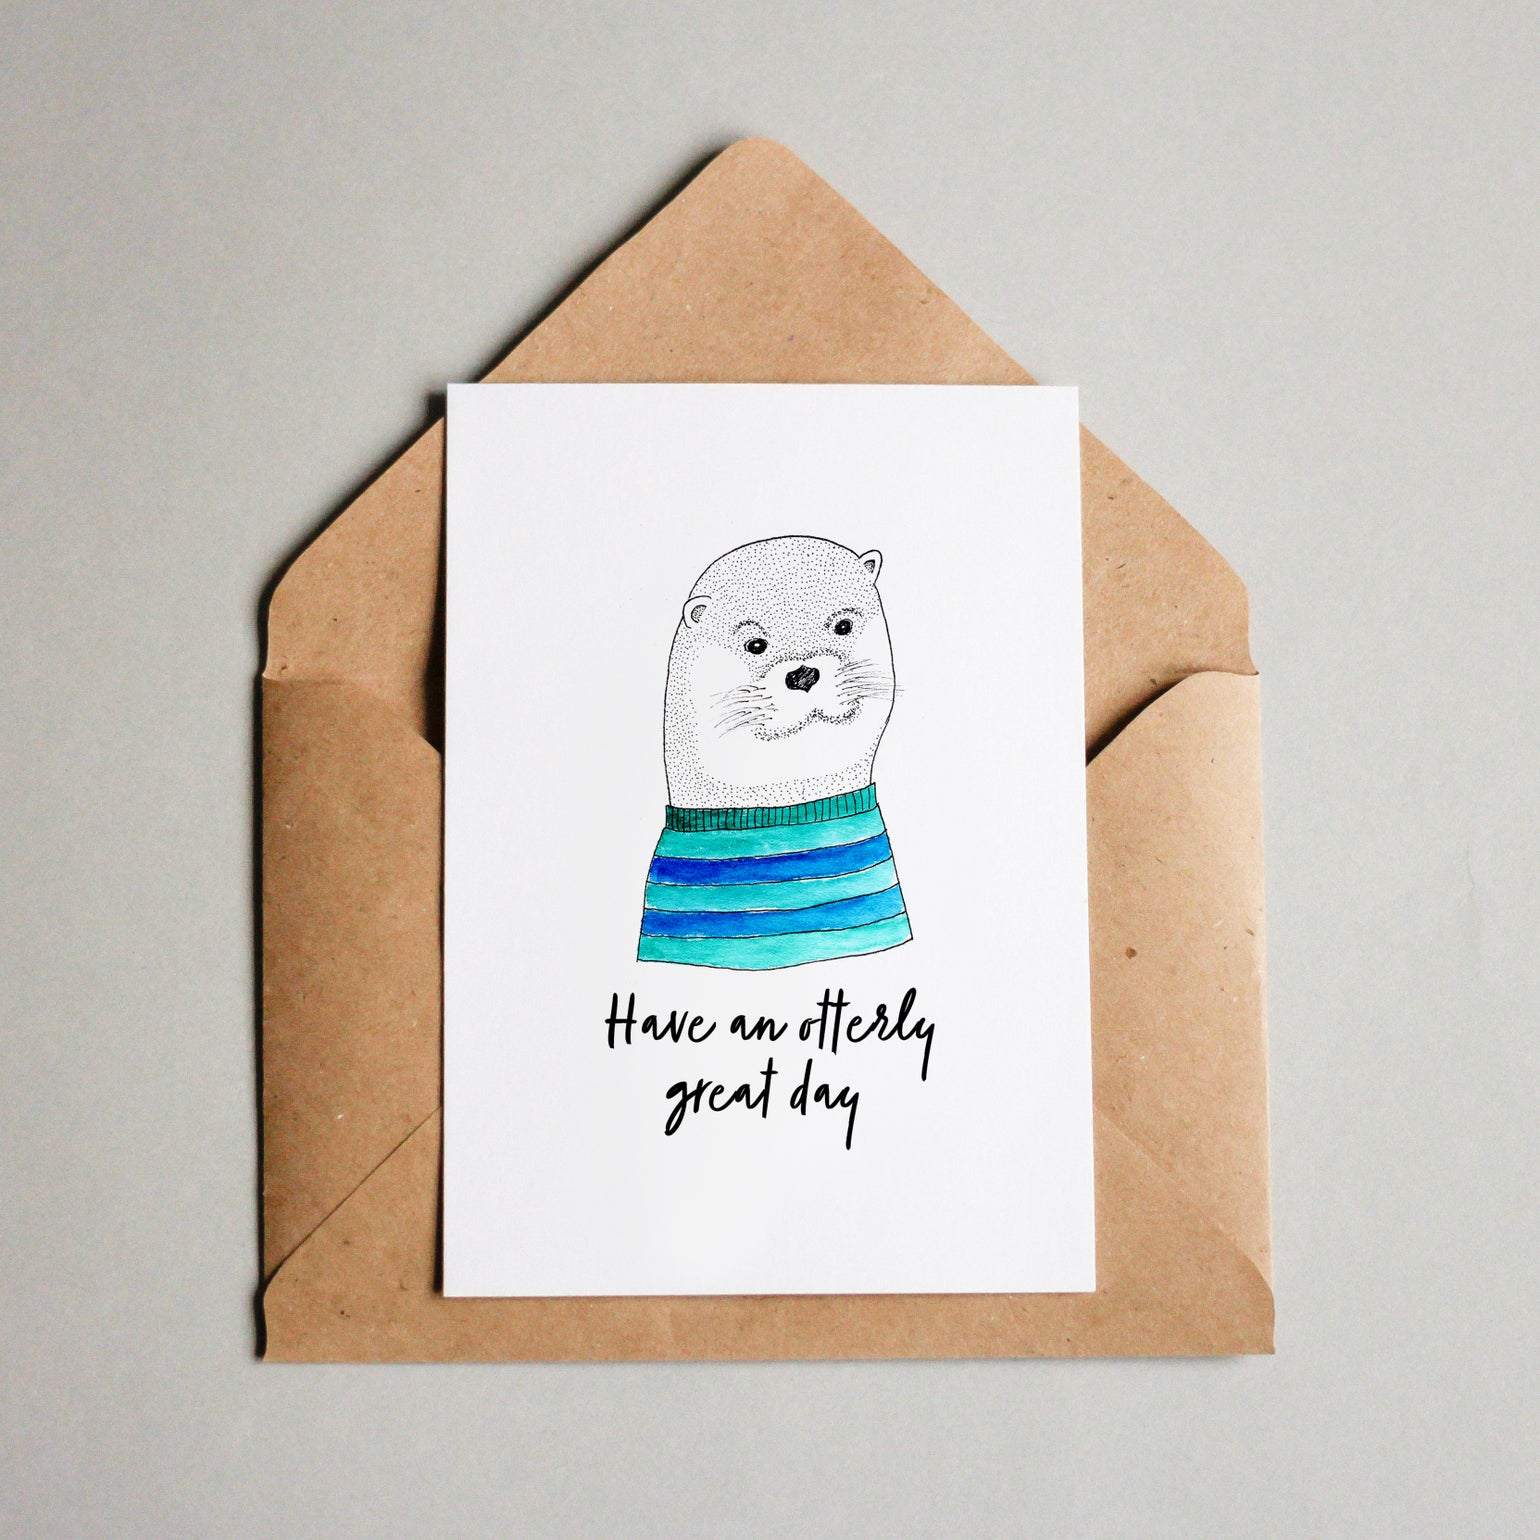 Image of Have an otterly great day